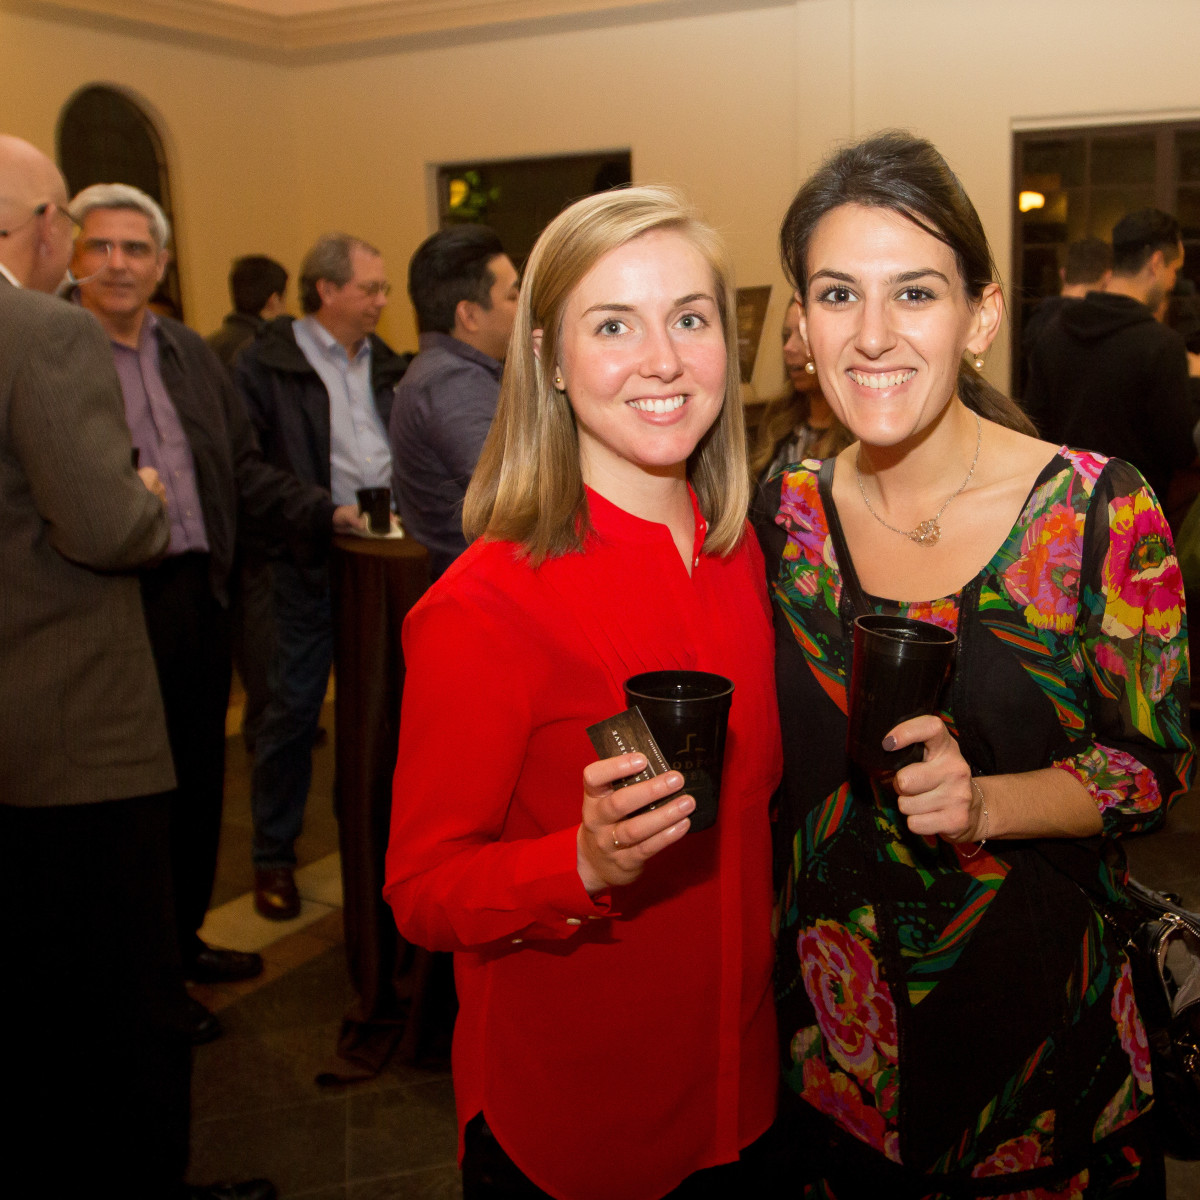 Woodford Reserve event Houston Courtney Giles, Ashley Ellerin